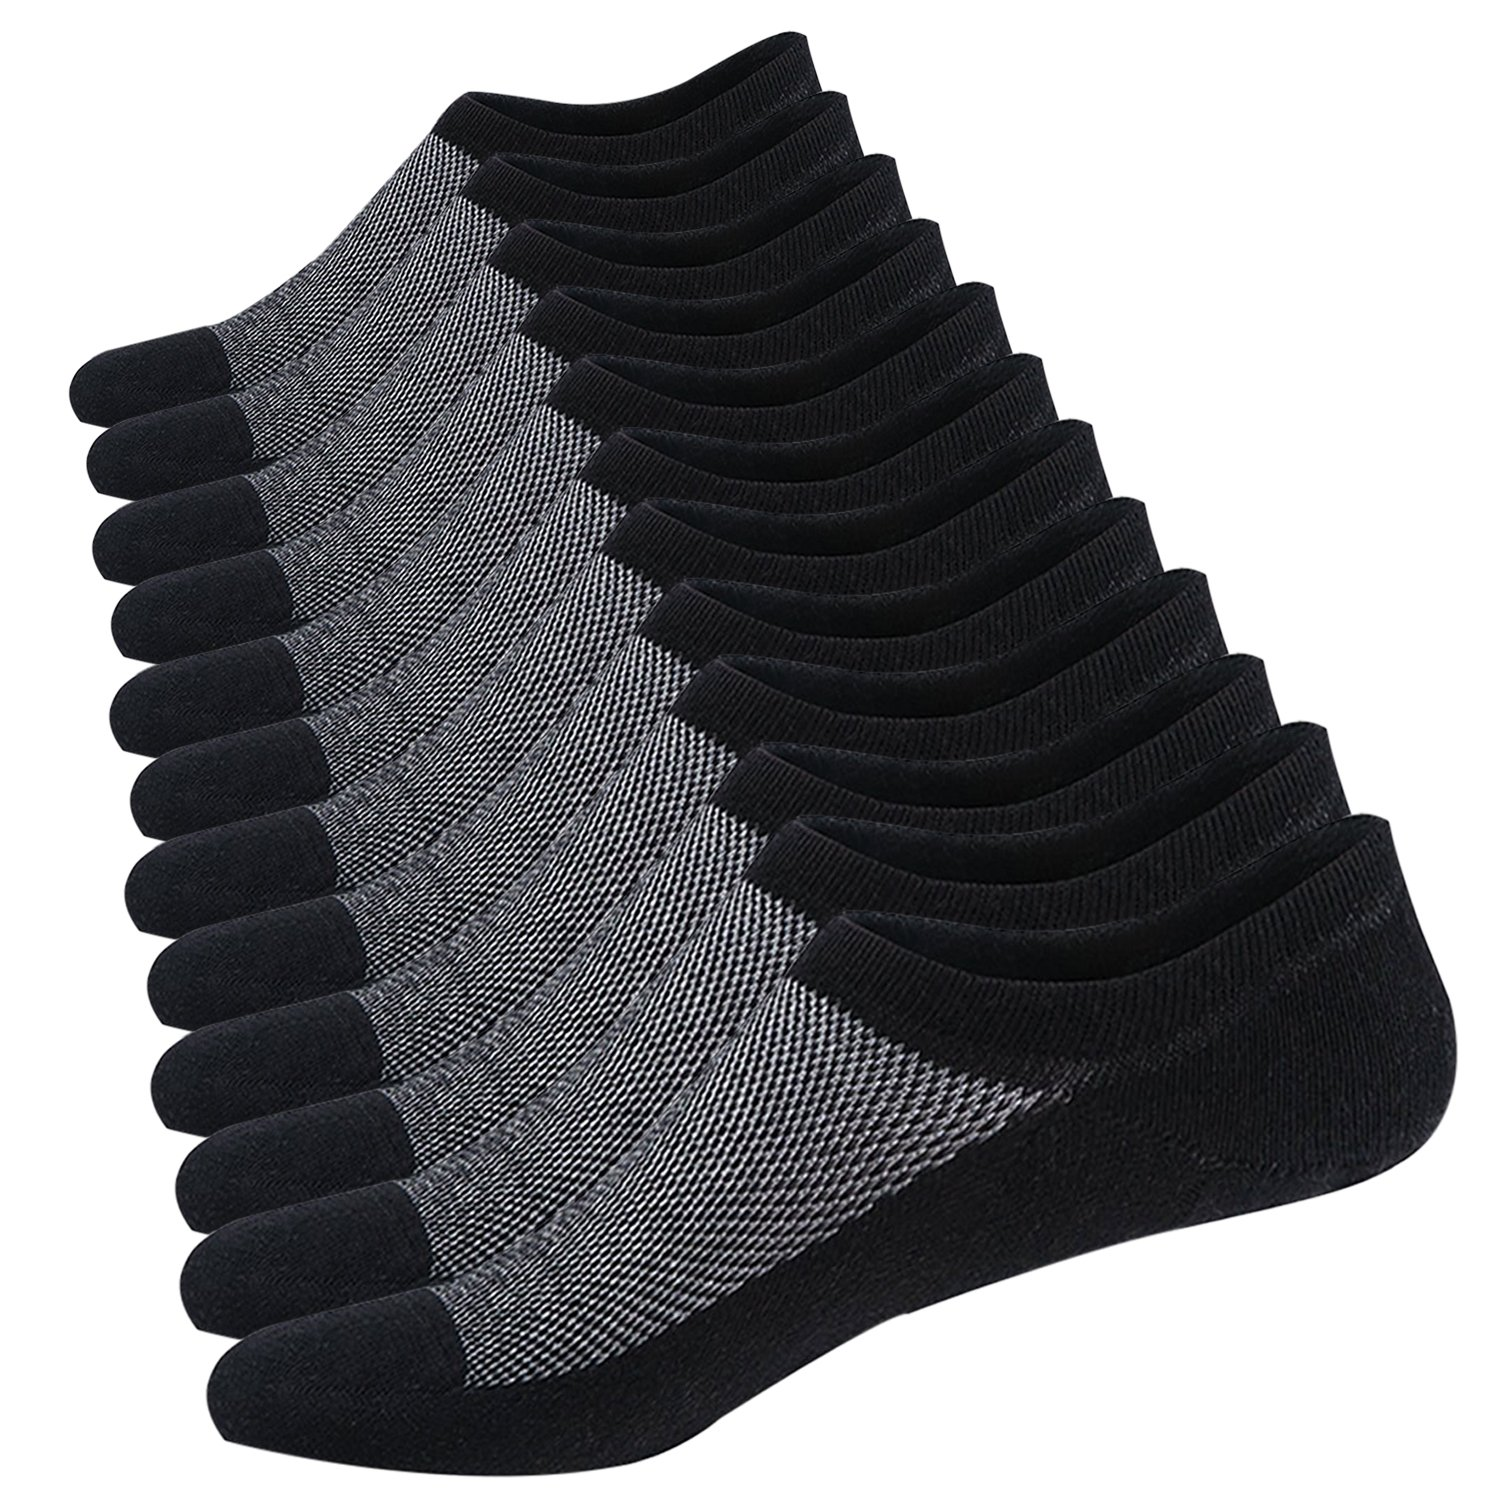 Ueither Calcetines Cortos Hombre Invisibles Respirable Calcetines tobilleros Algodón Antideslizantes product image